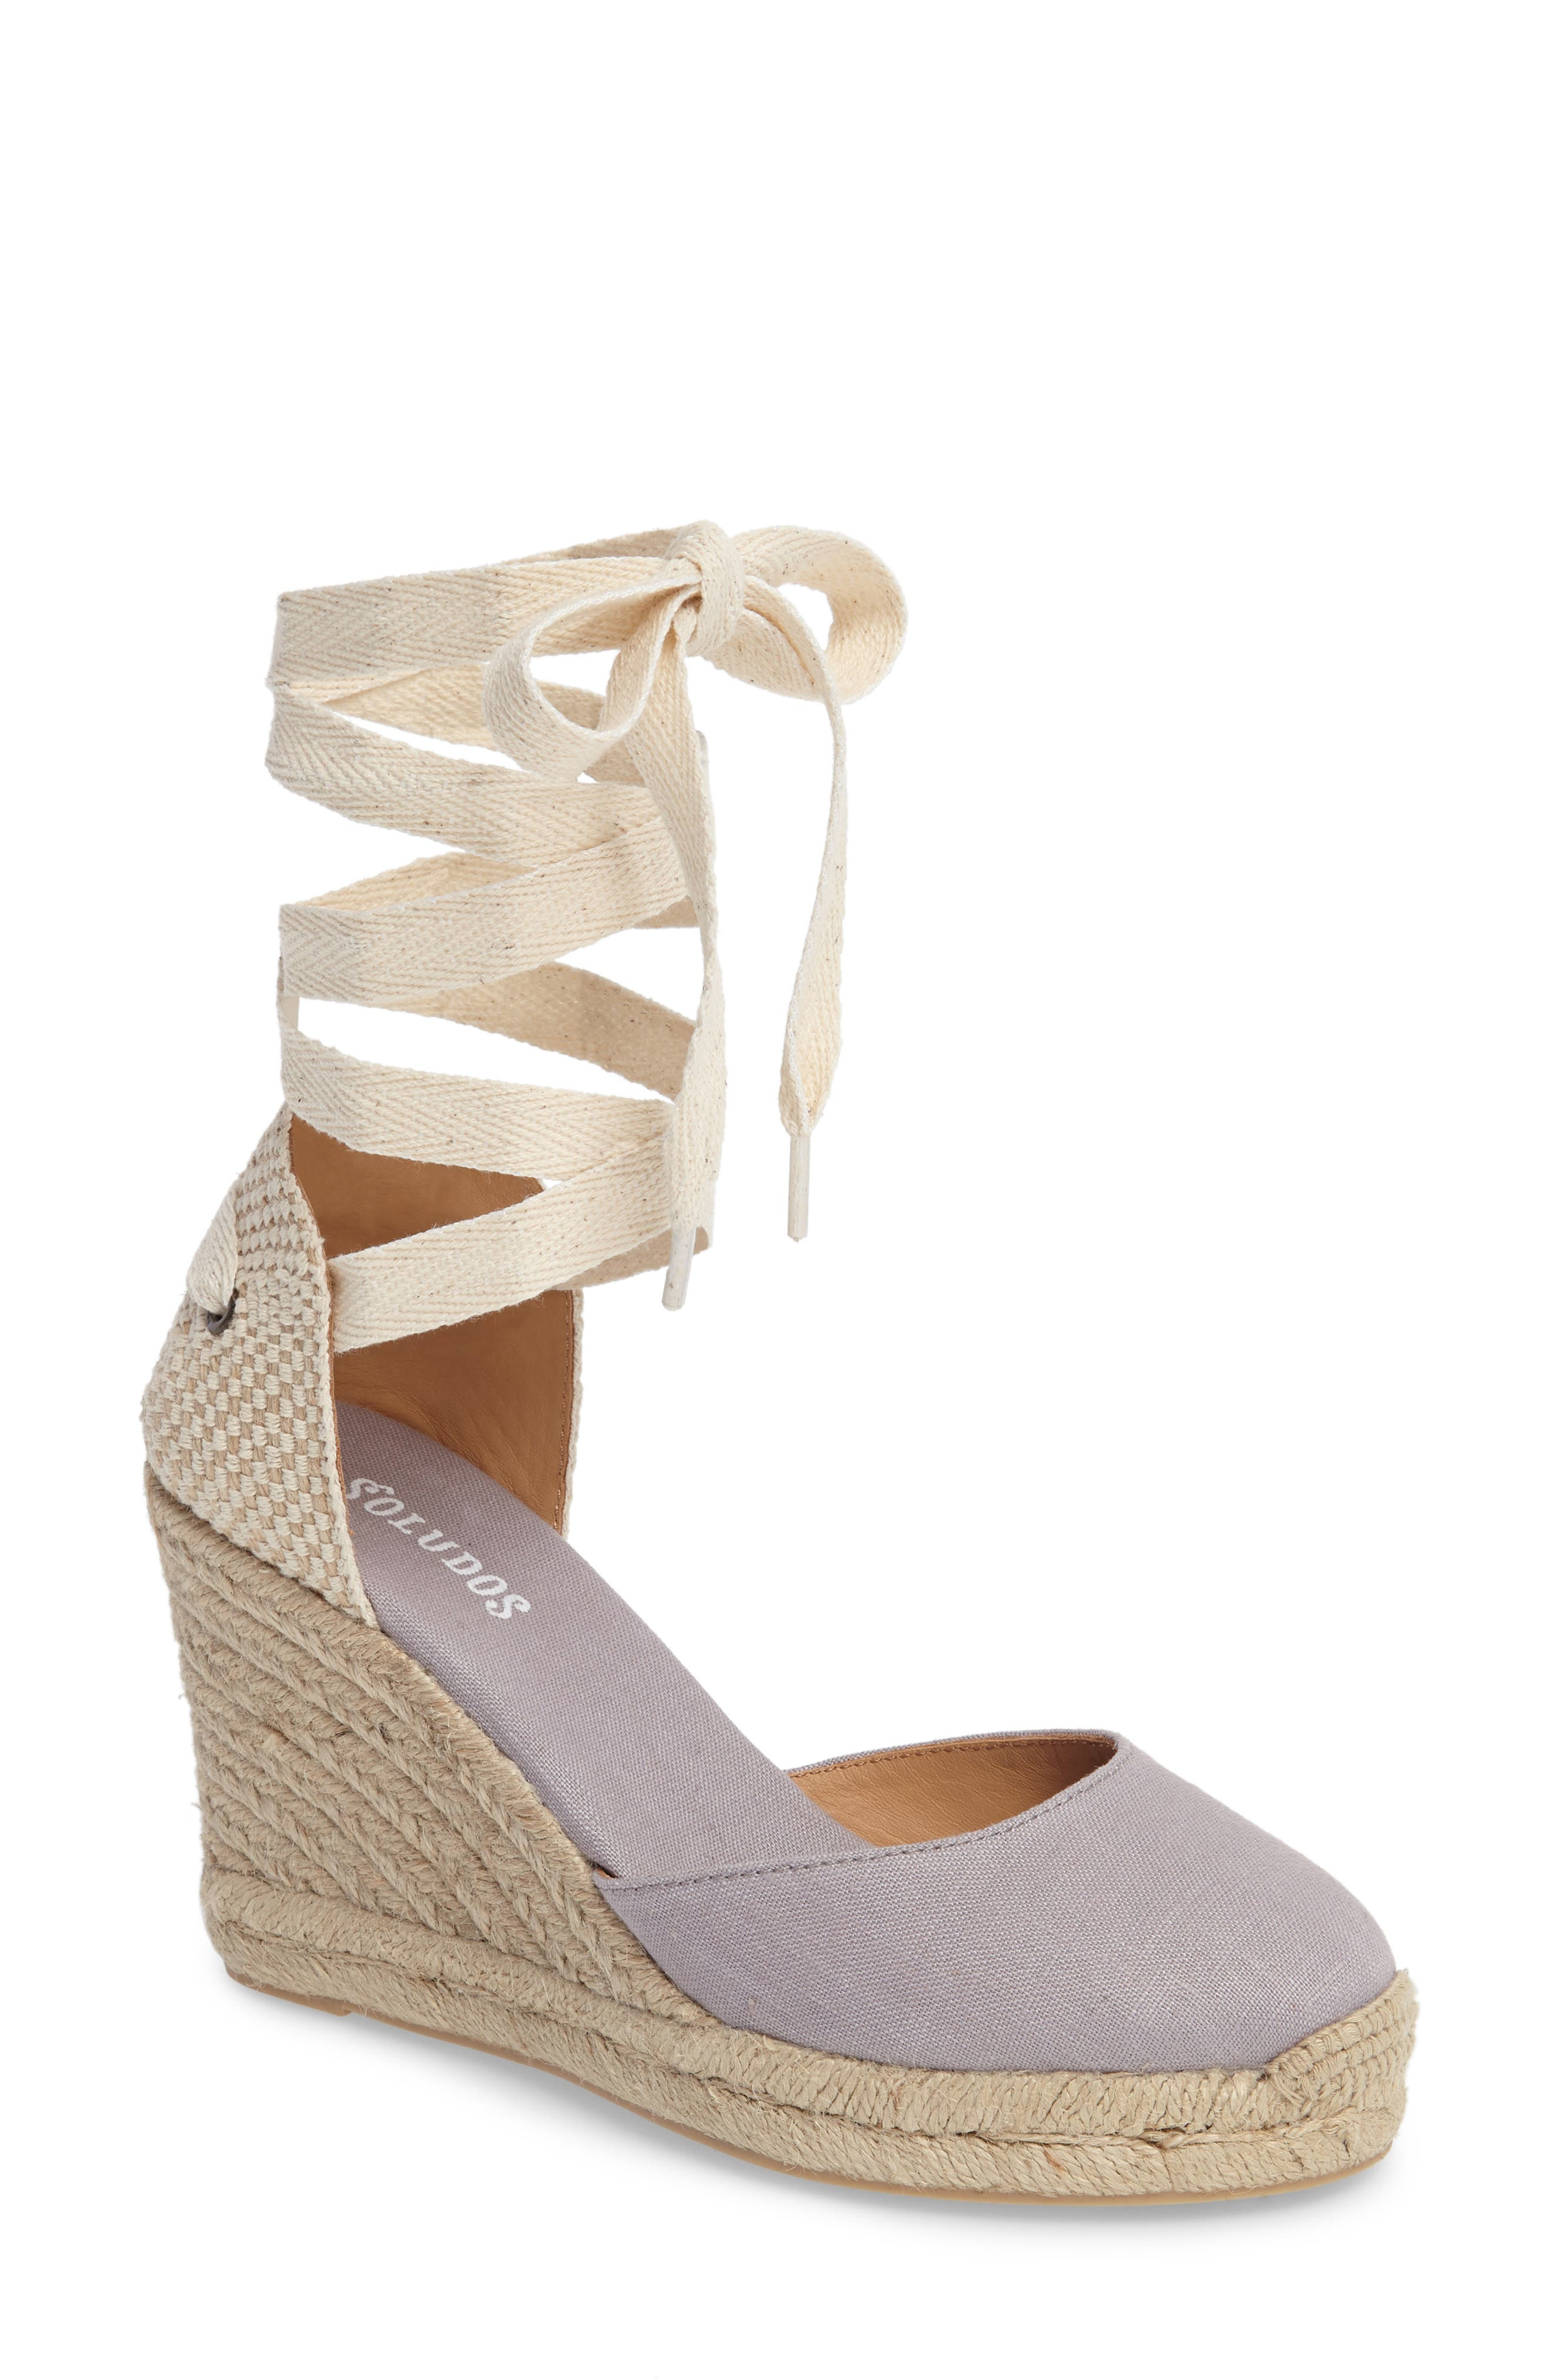 Soludos Tall Wedge Espadrille (Women)